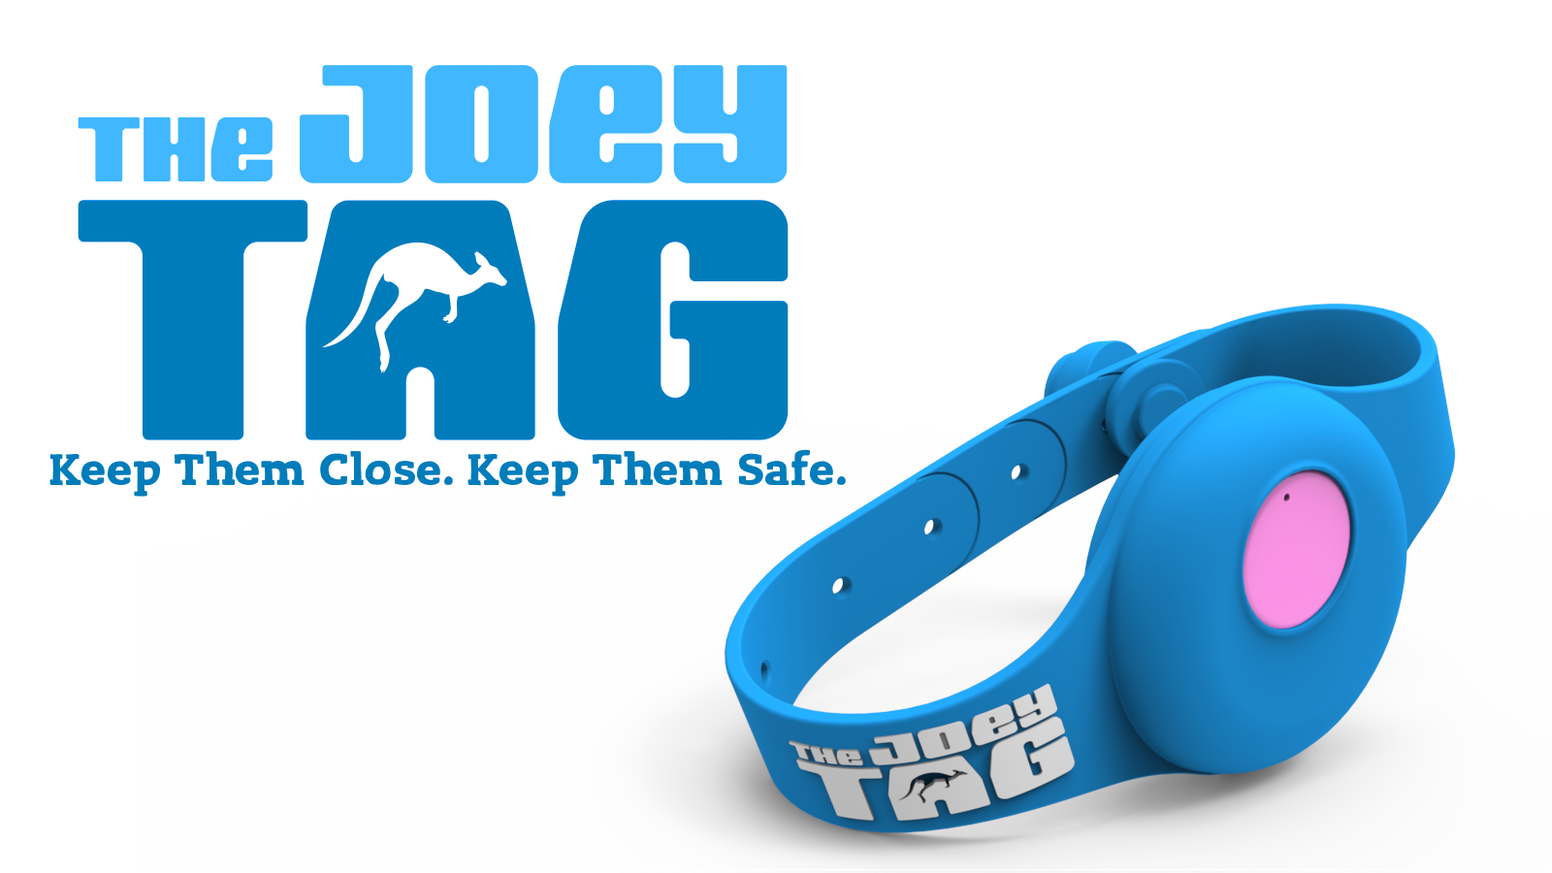 The Joey Tag is the new safety wearable for kids from the makers of My Buddy Tag designed to help keep your (and our) little ones safe.